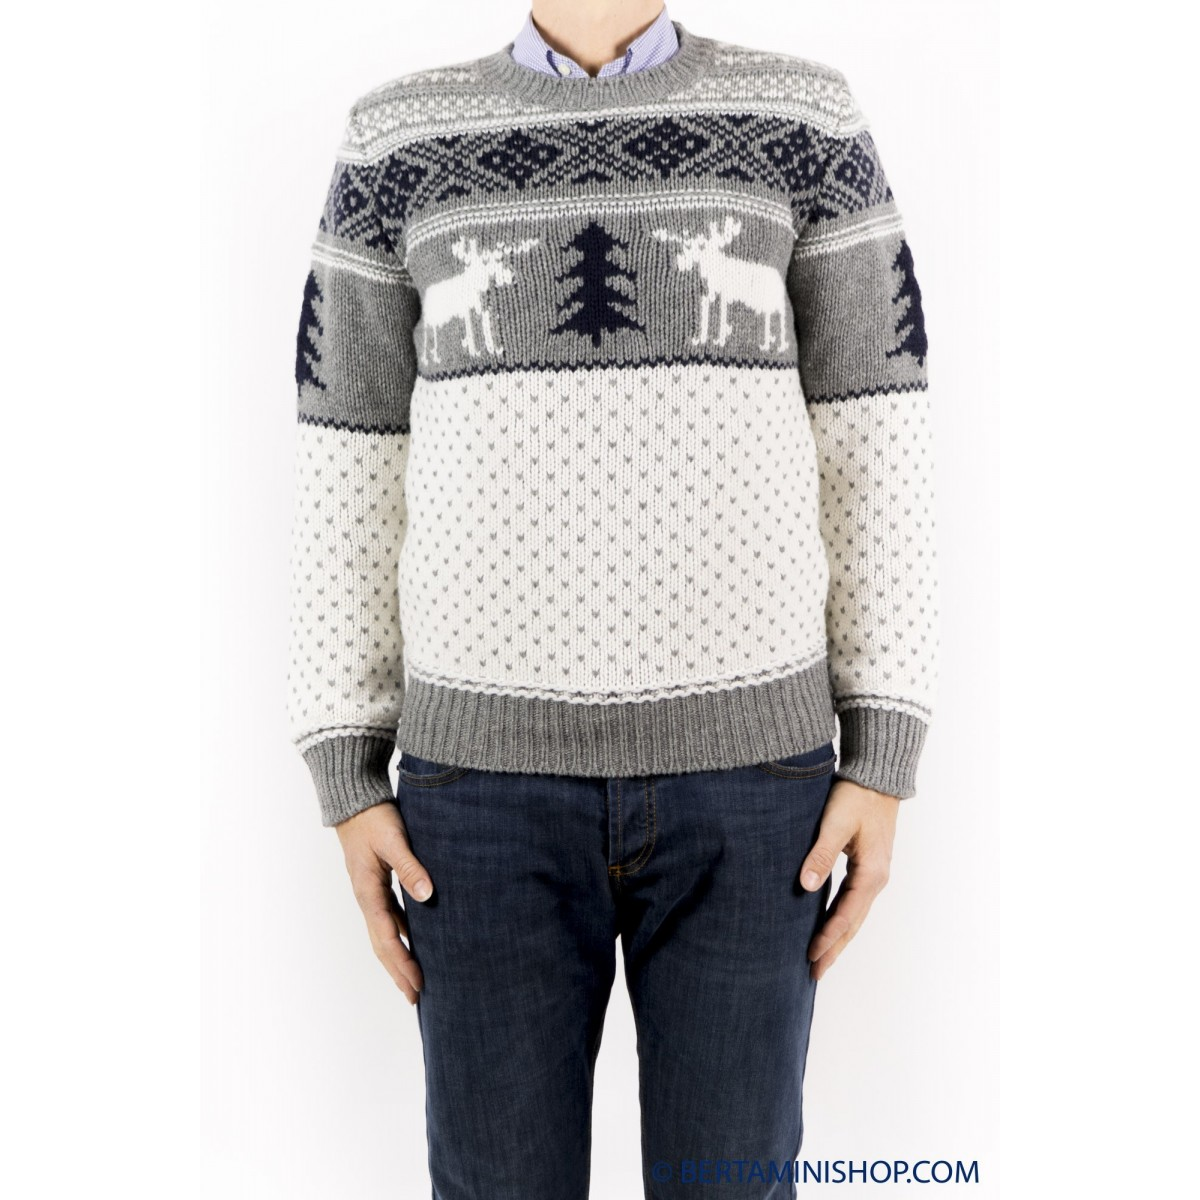 Pullover Kangra Manner - 9306/01 32 - grigio medio